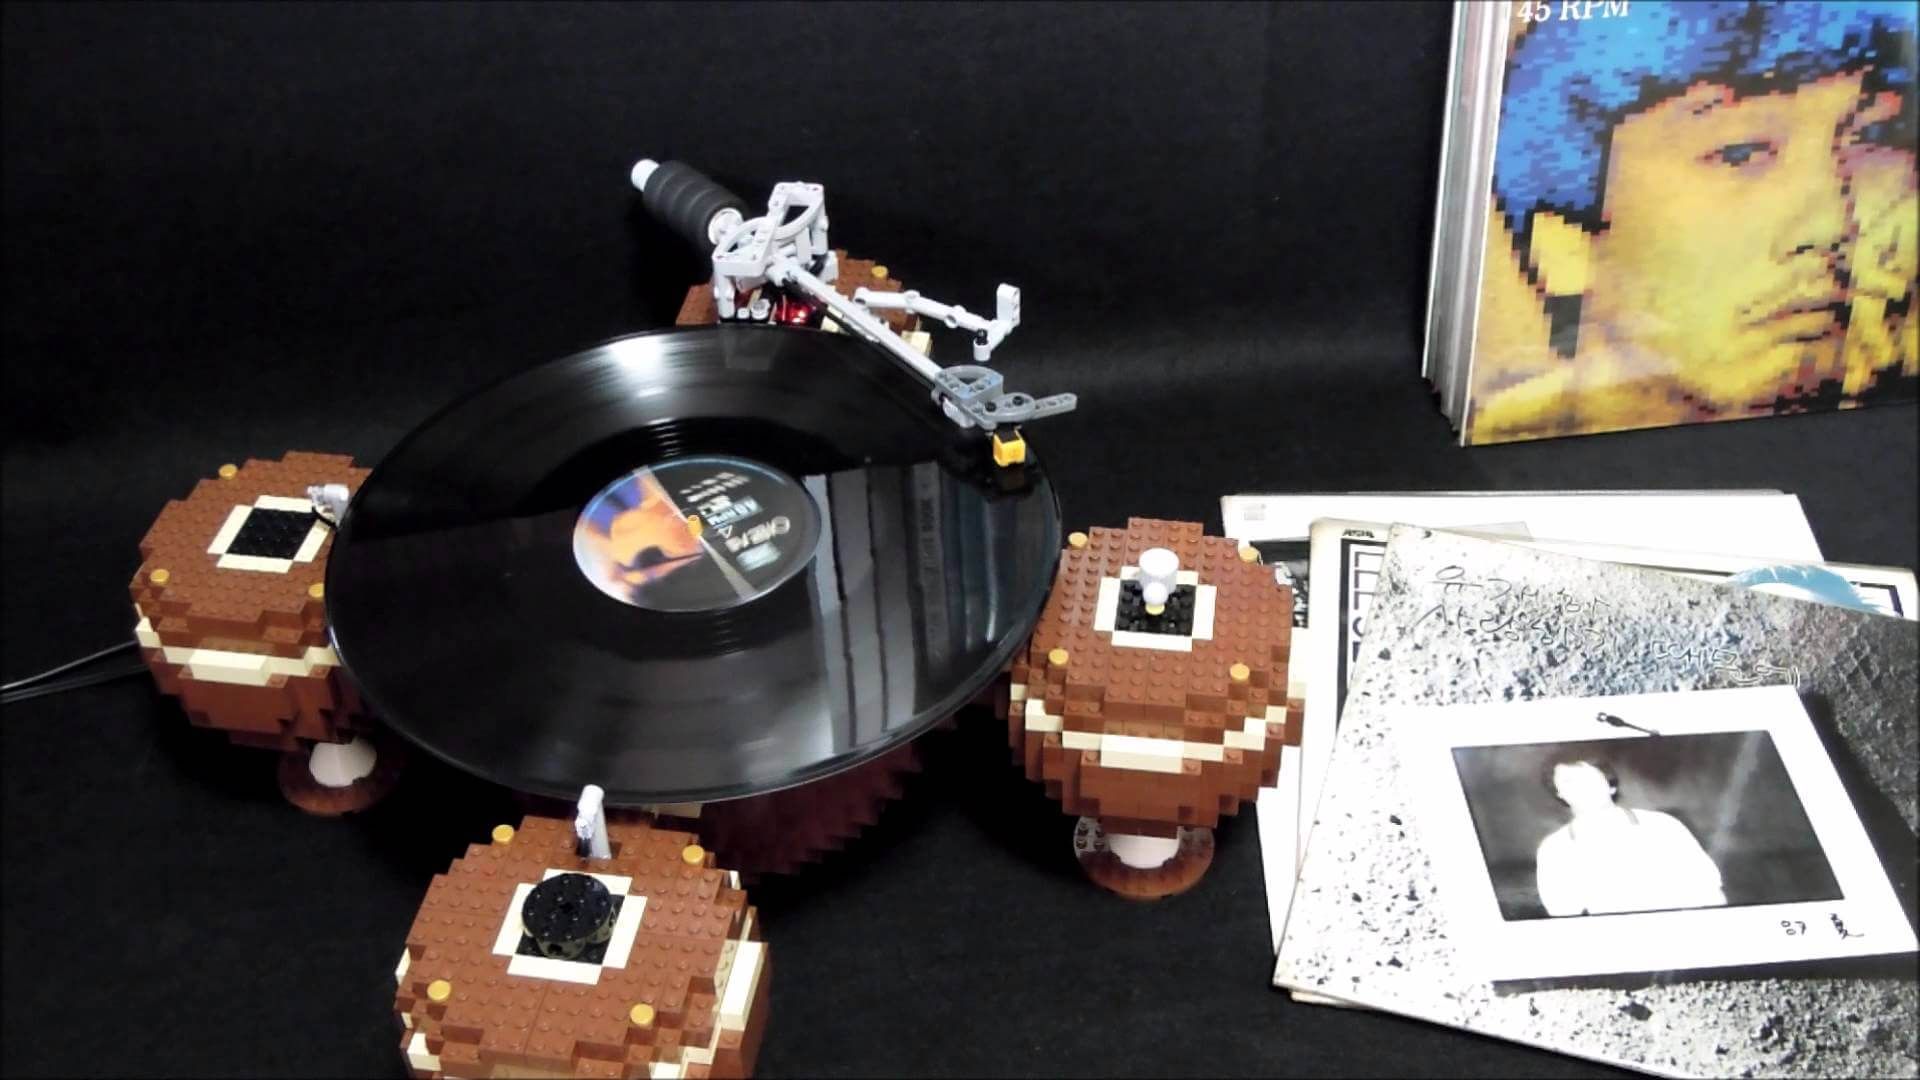 This Turntable Is Made of 2,405 Lego bricks